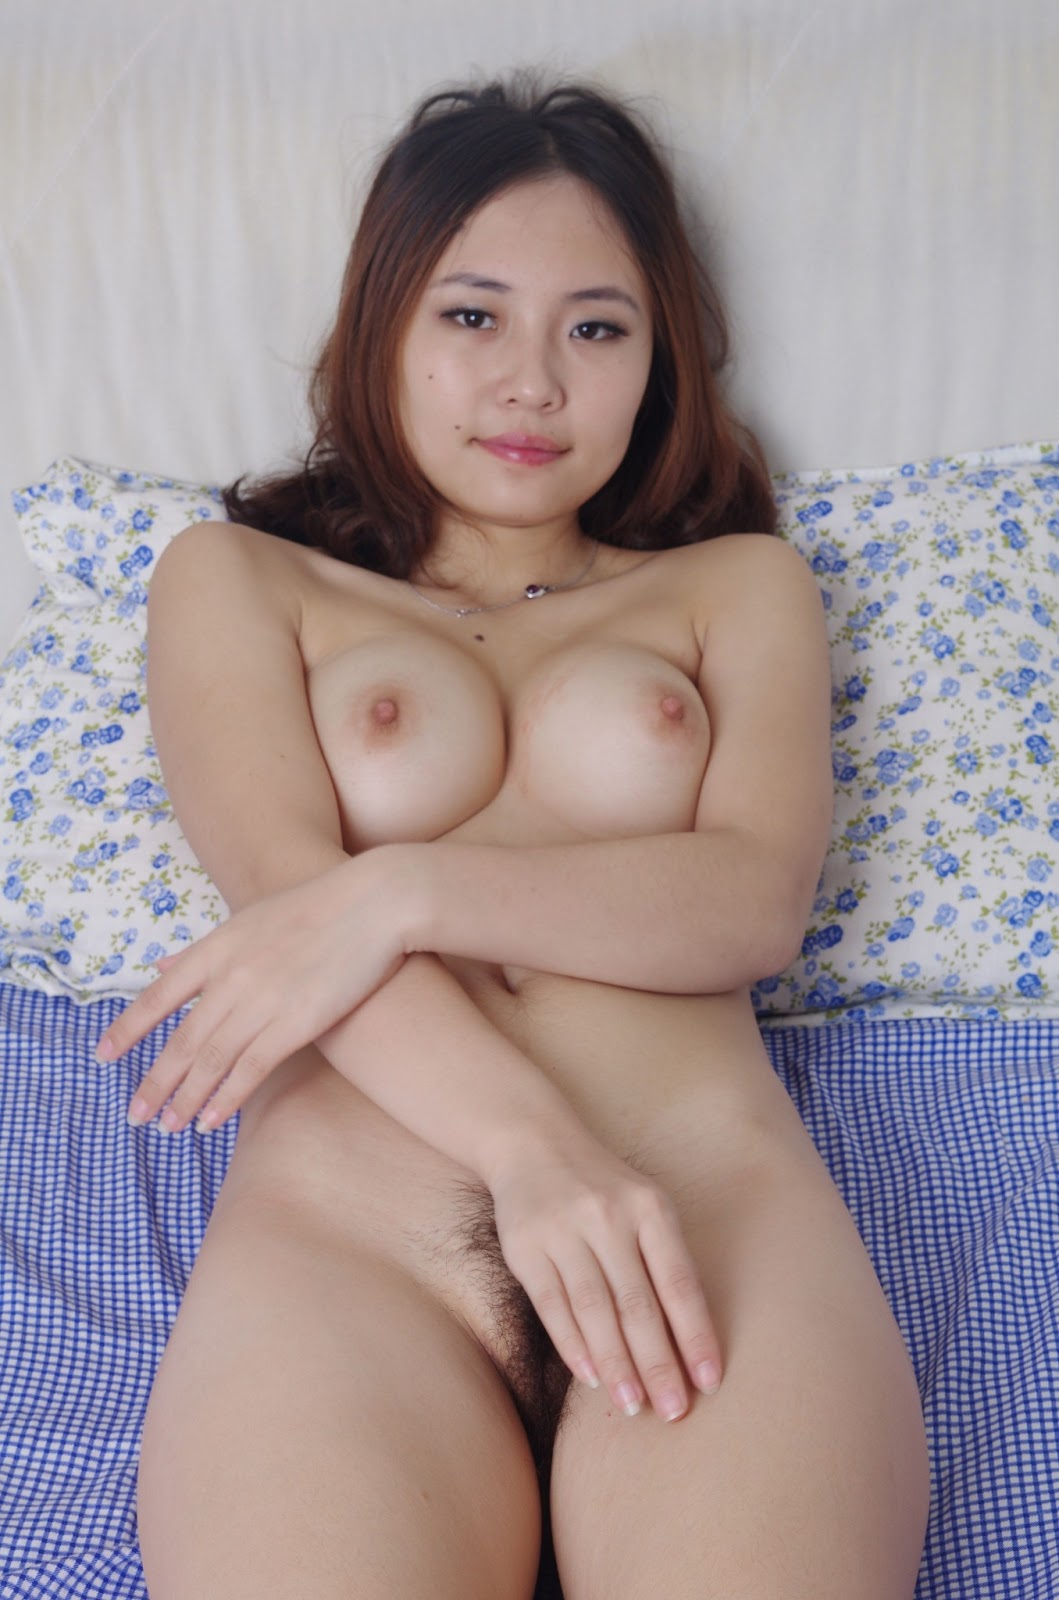 thai hairy pussy porn Hairy Prostitute Tube Search (435 videos) - NudeVista.